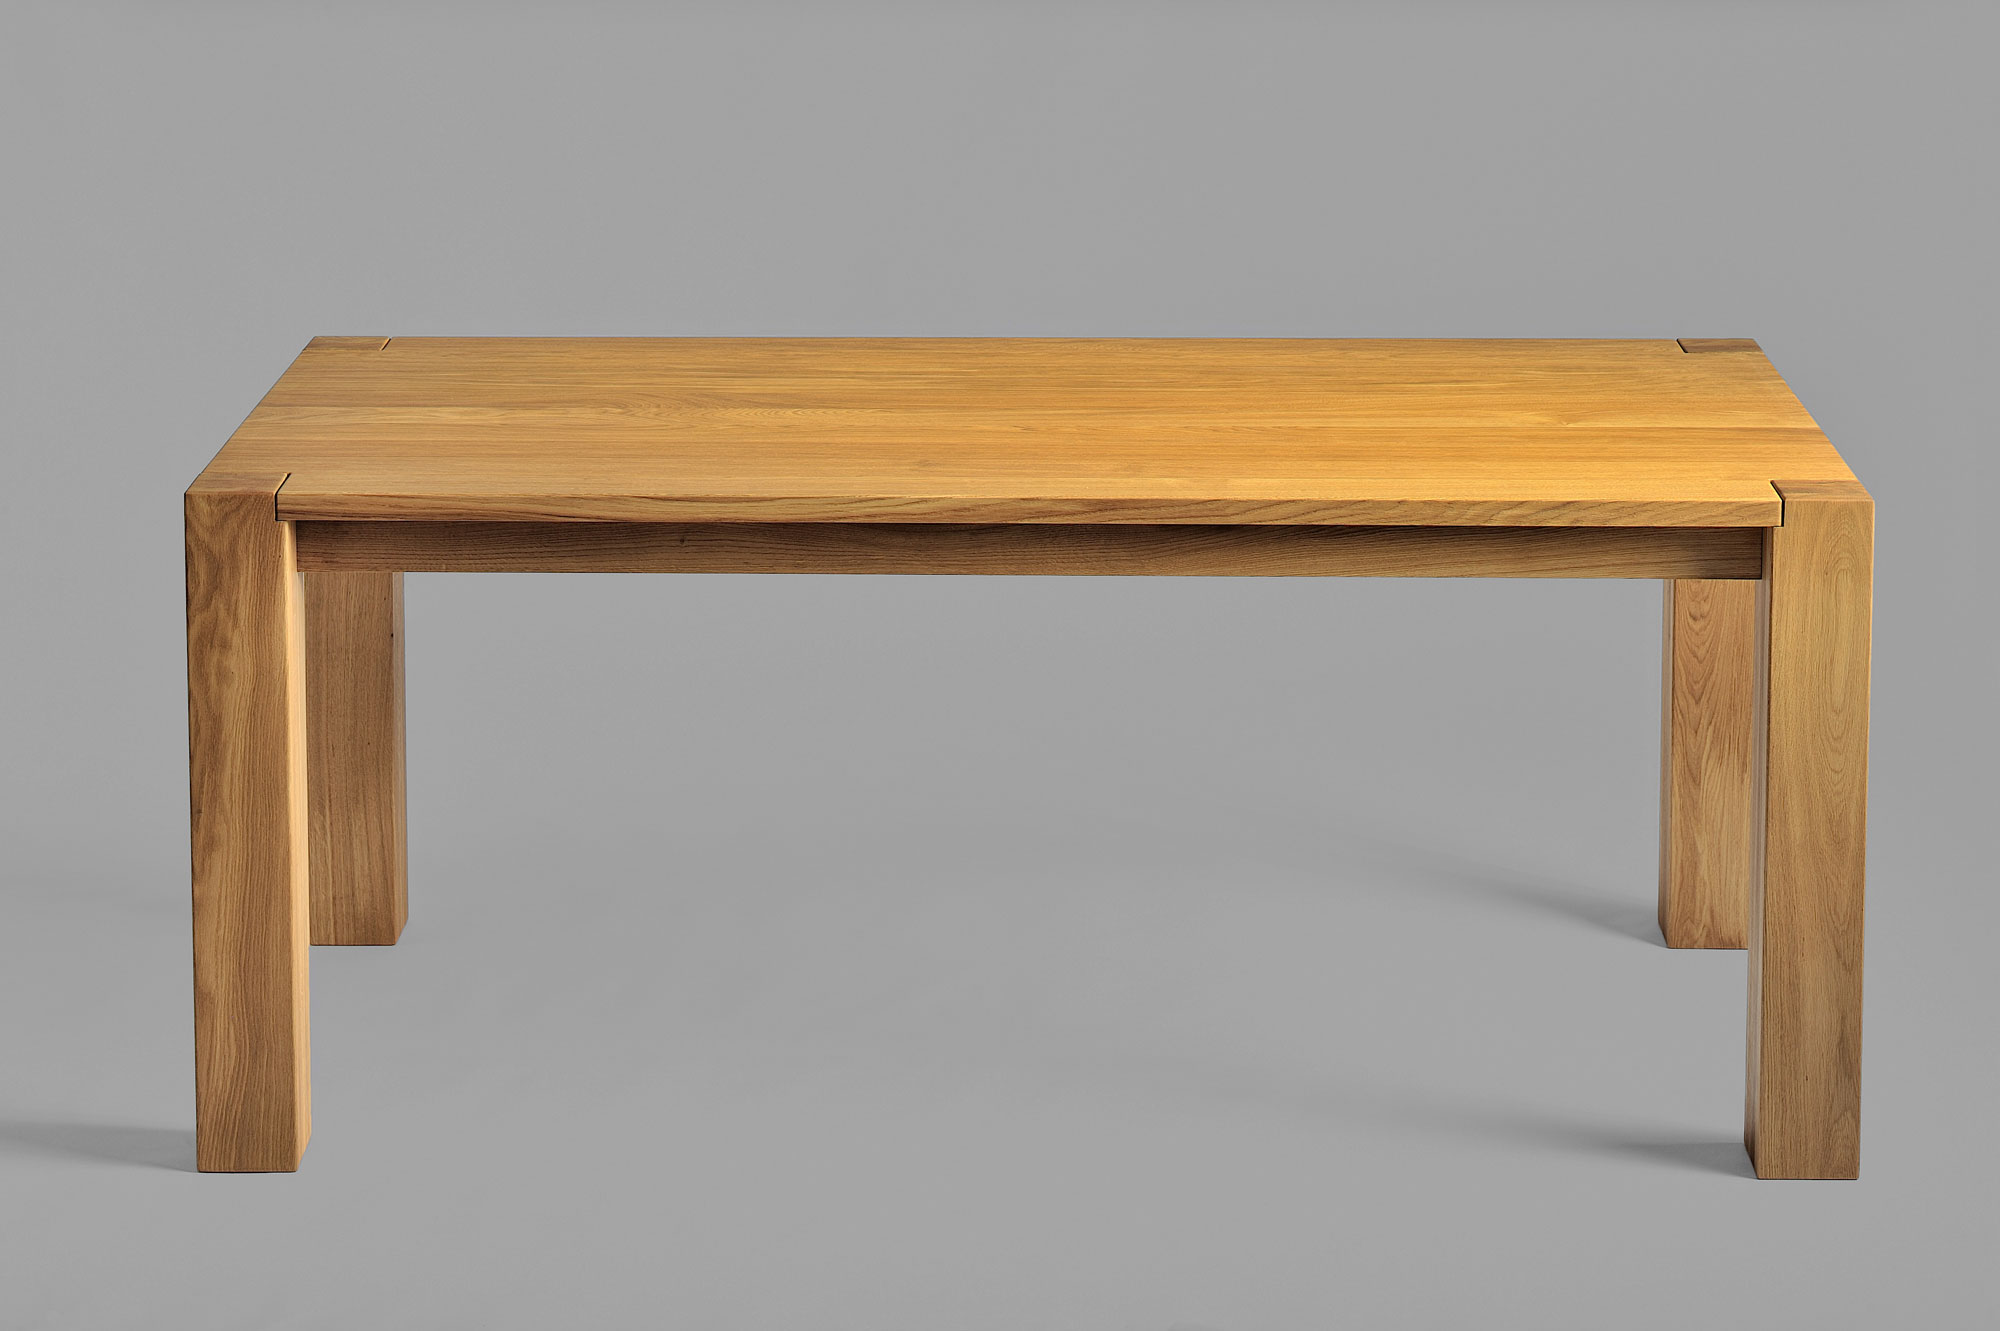 Rustic Oak Dining Table TAURUS 3 1326s custom made in solid wood by vitamin design